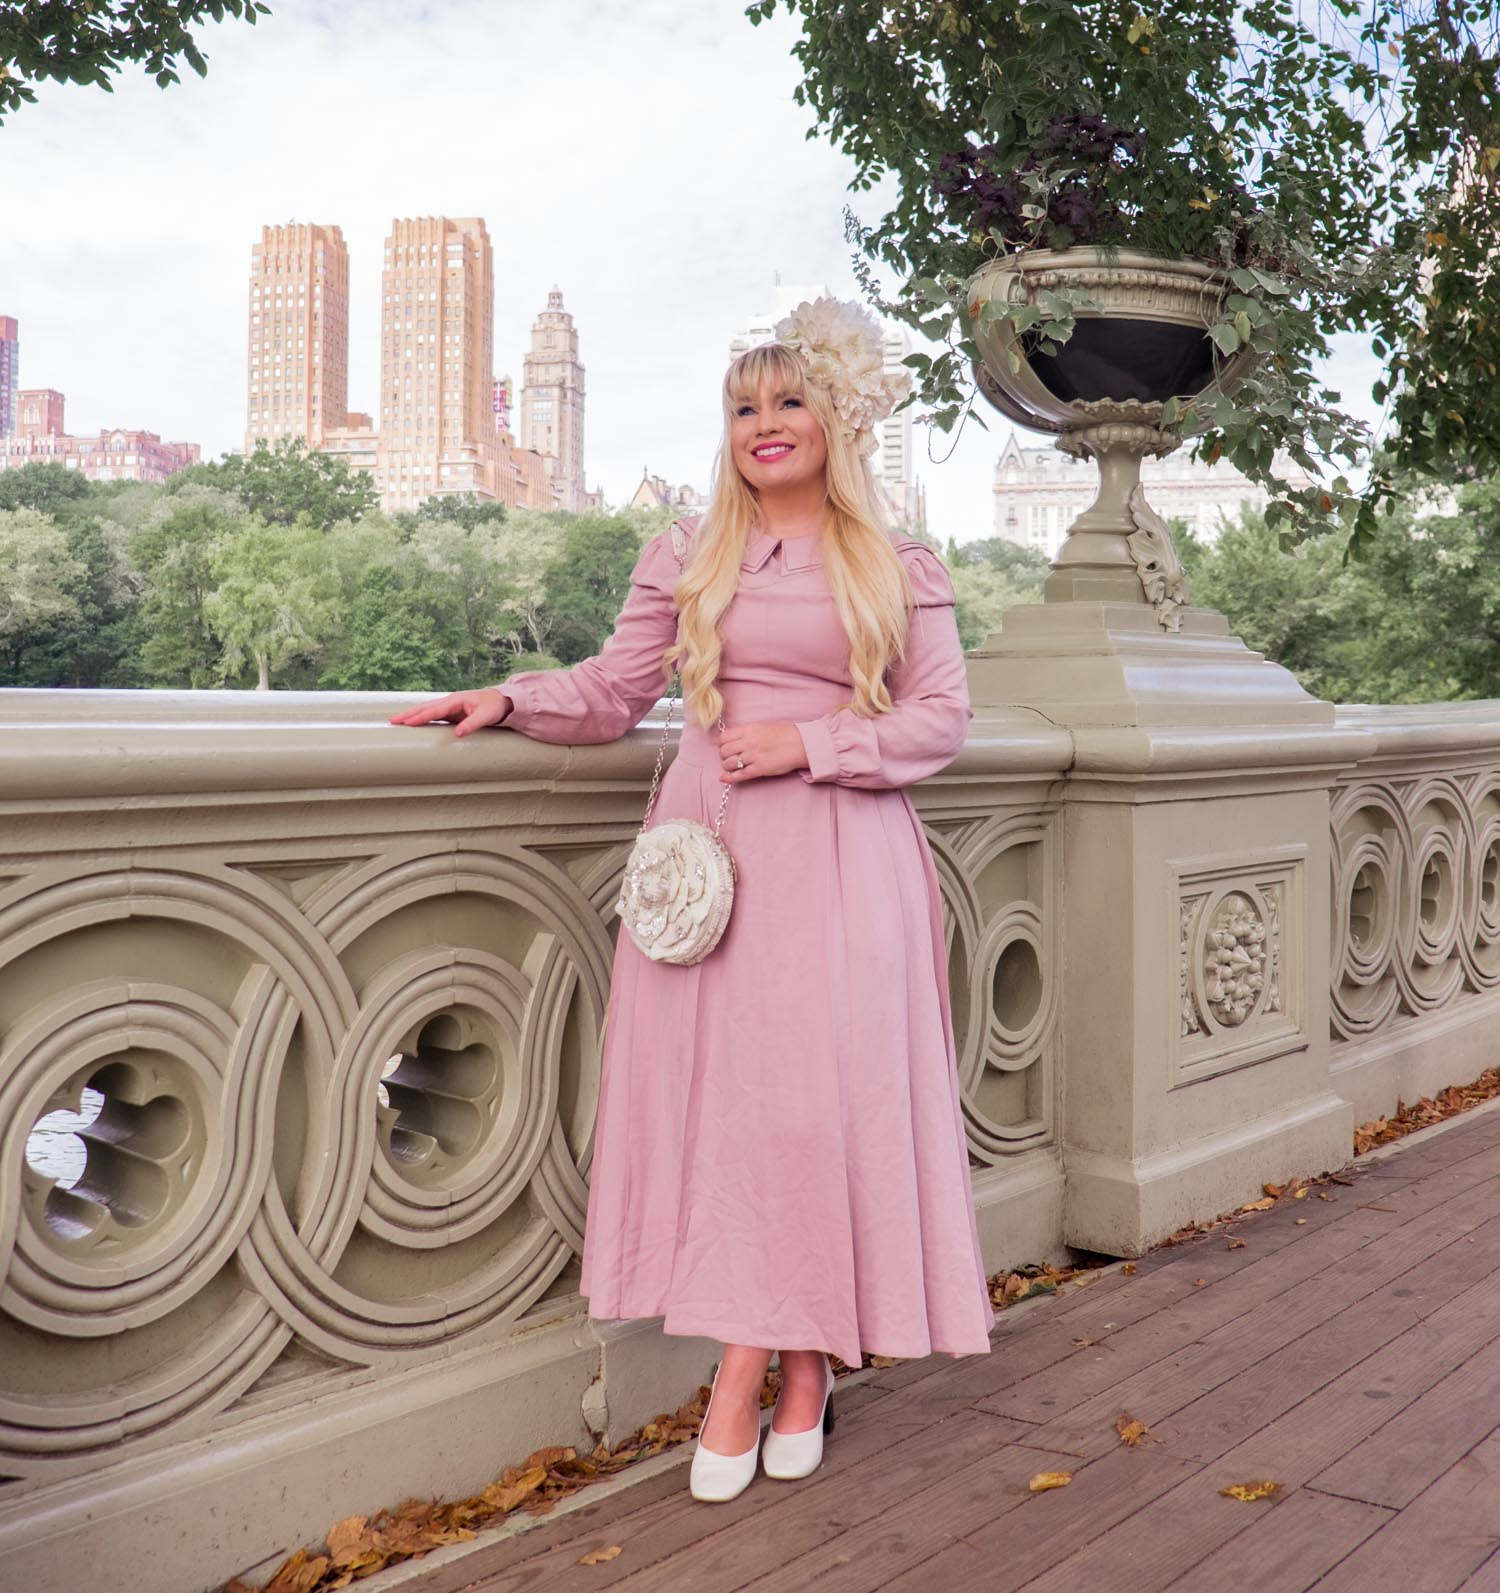 Elizabeth Hugen of Lizzie in Lace wears a pink Shopyte dress to NYFW!